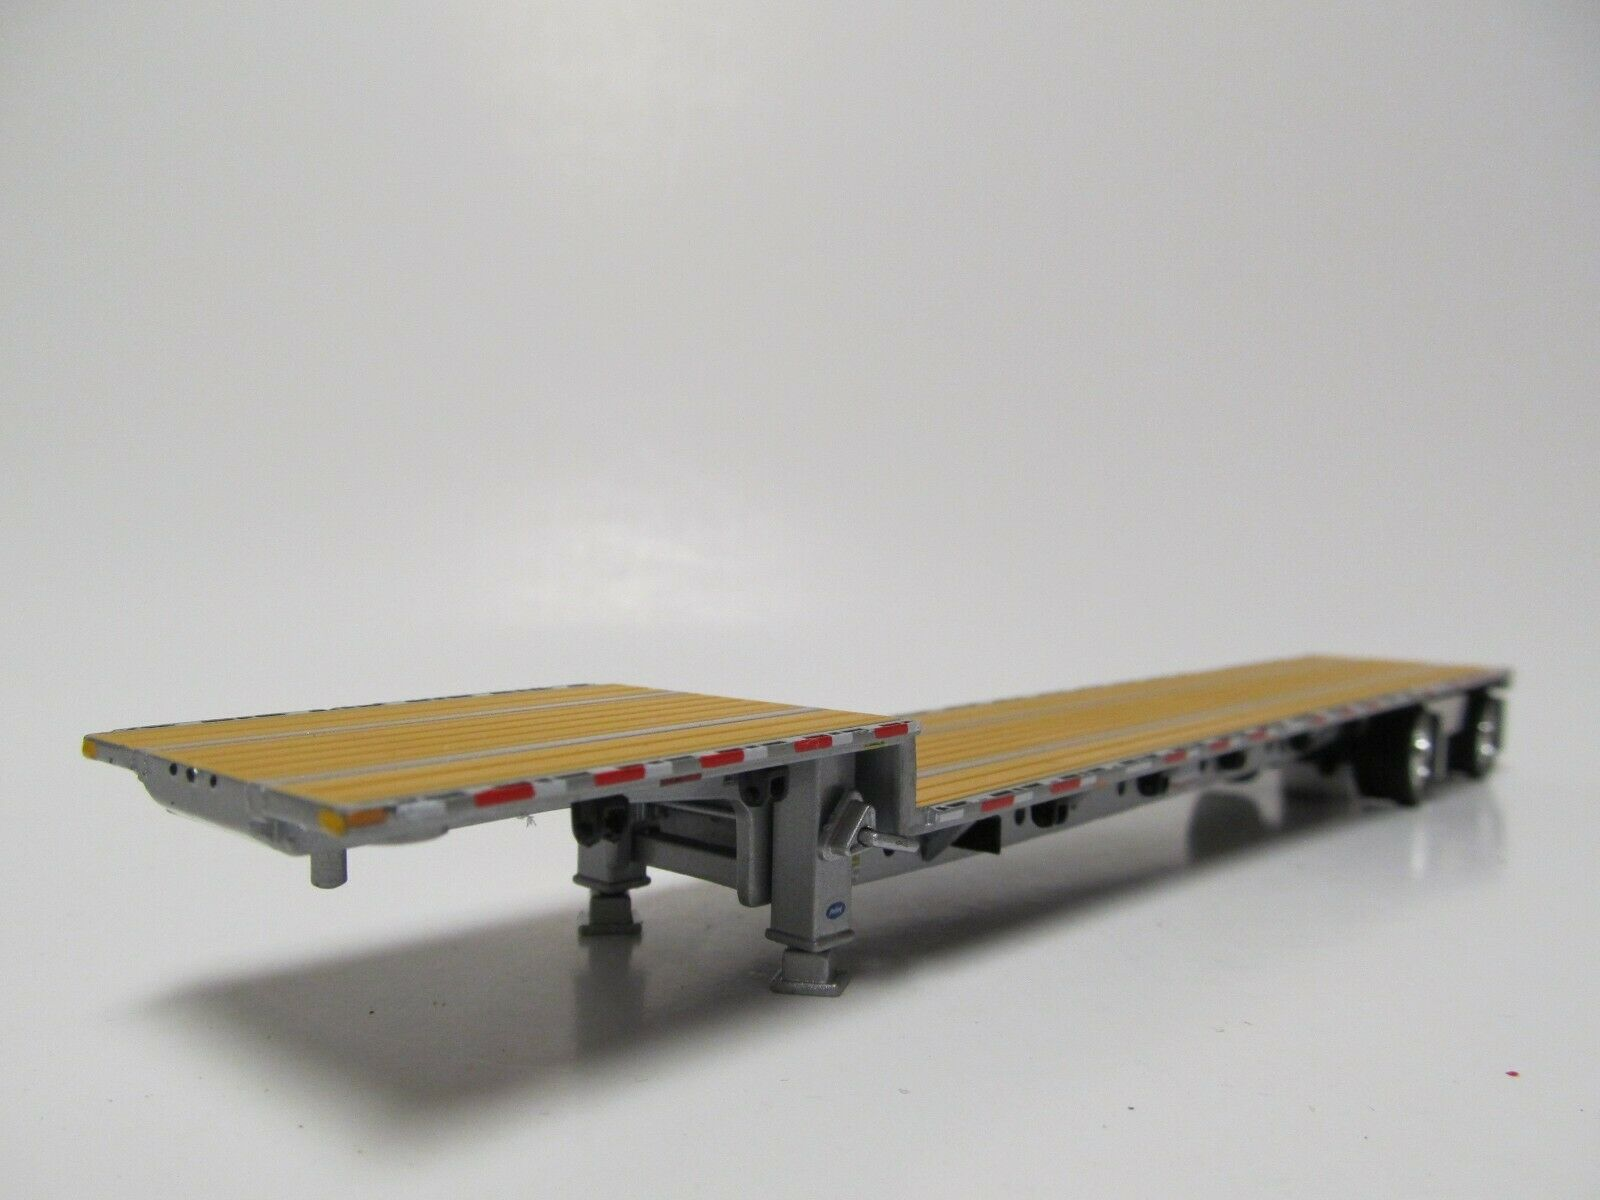 DCP 1/64 SCALE TRANSCRAFT STEP DECK TRAILER TAN / BROWN DECK WITH SILVER FRAME